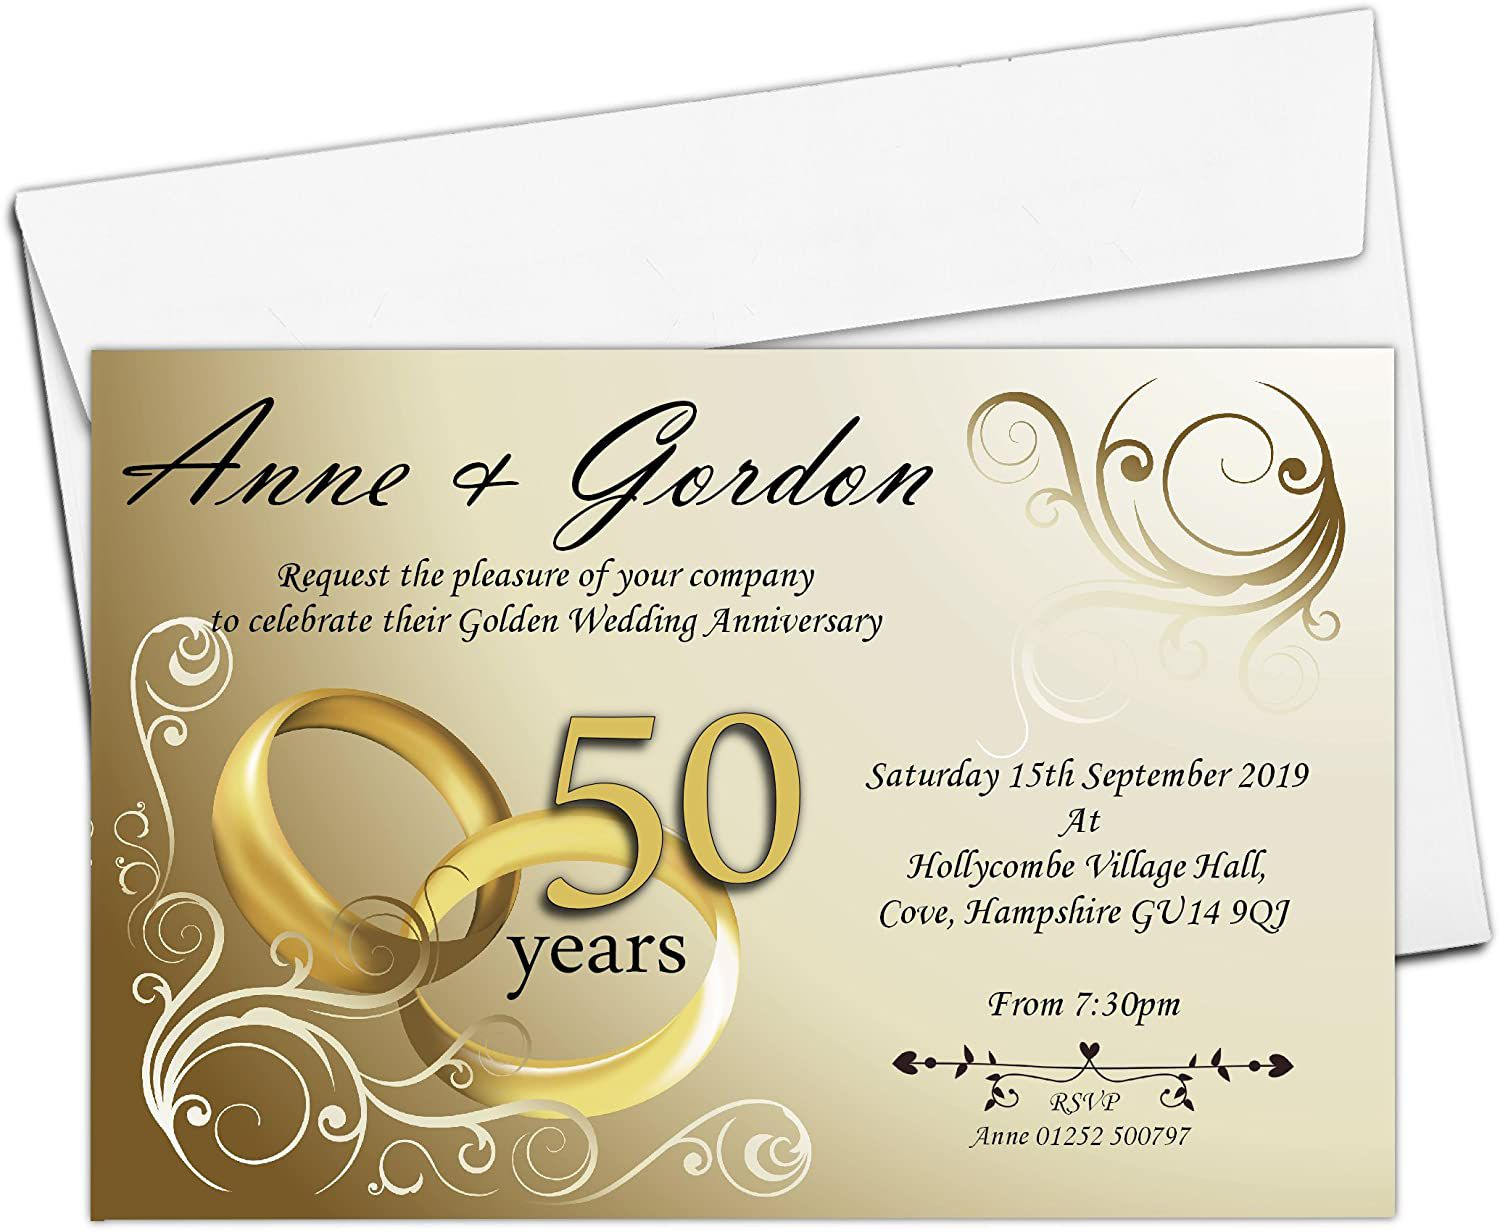 003 Archaicawful 50th Anniversary Invitation Design Concept  Designs Wedding Template Microsoft Word Surprise Party Wording Card IdeaFull